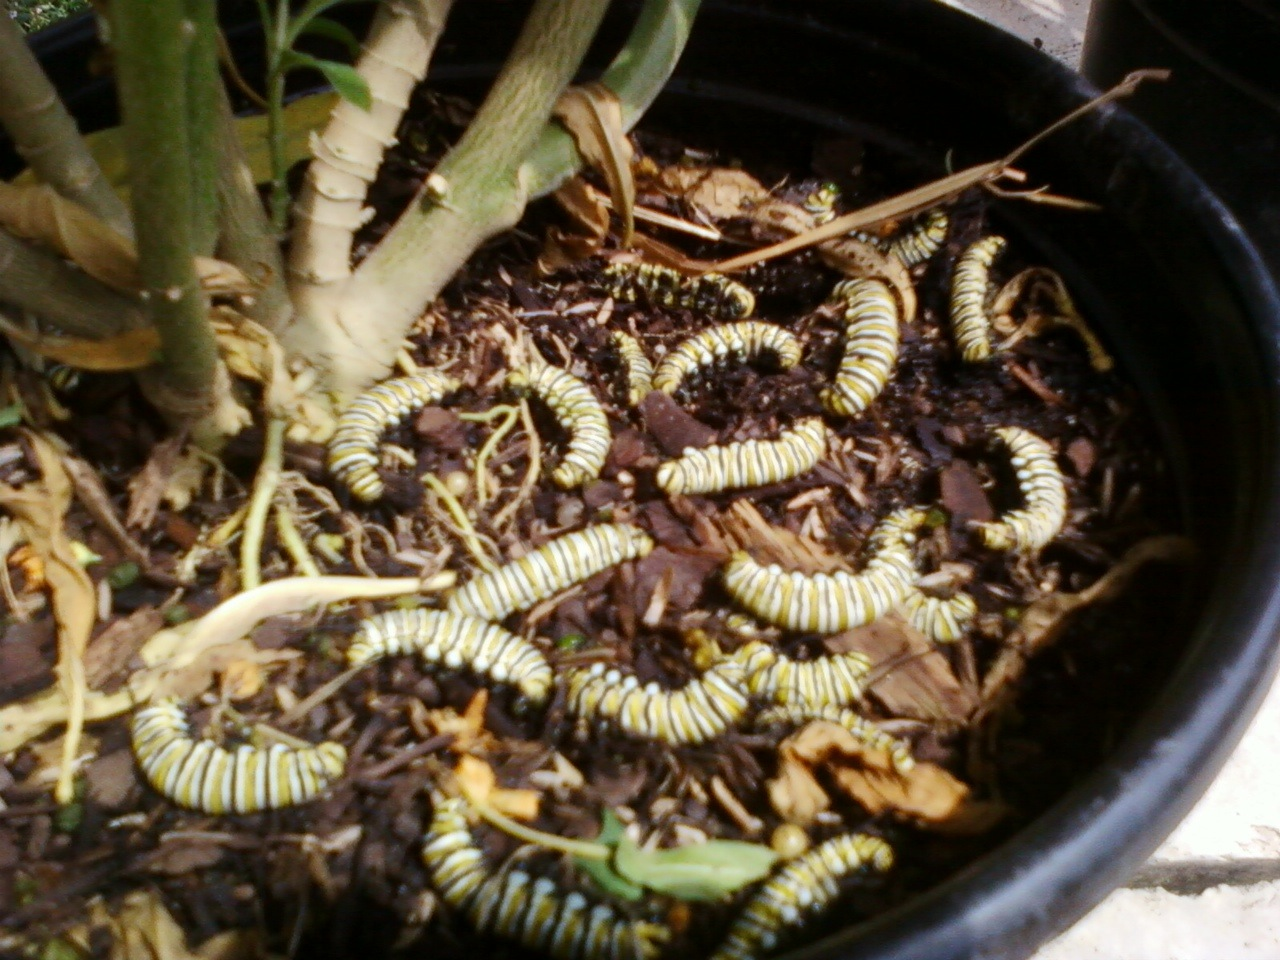 Boo-hoo! Dead Monarch caterpillars fall victim to pesticide laced milkweed